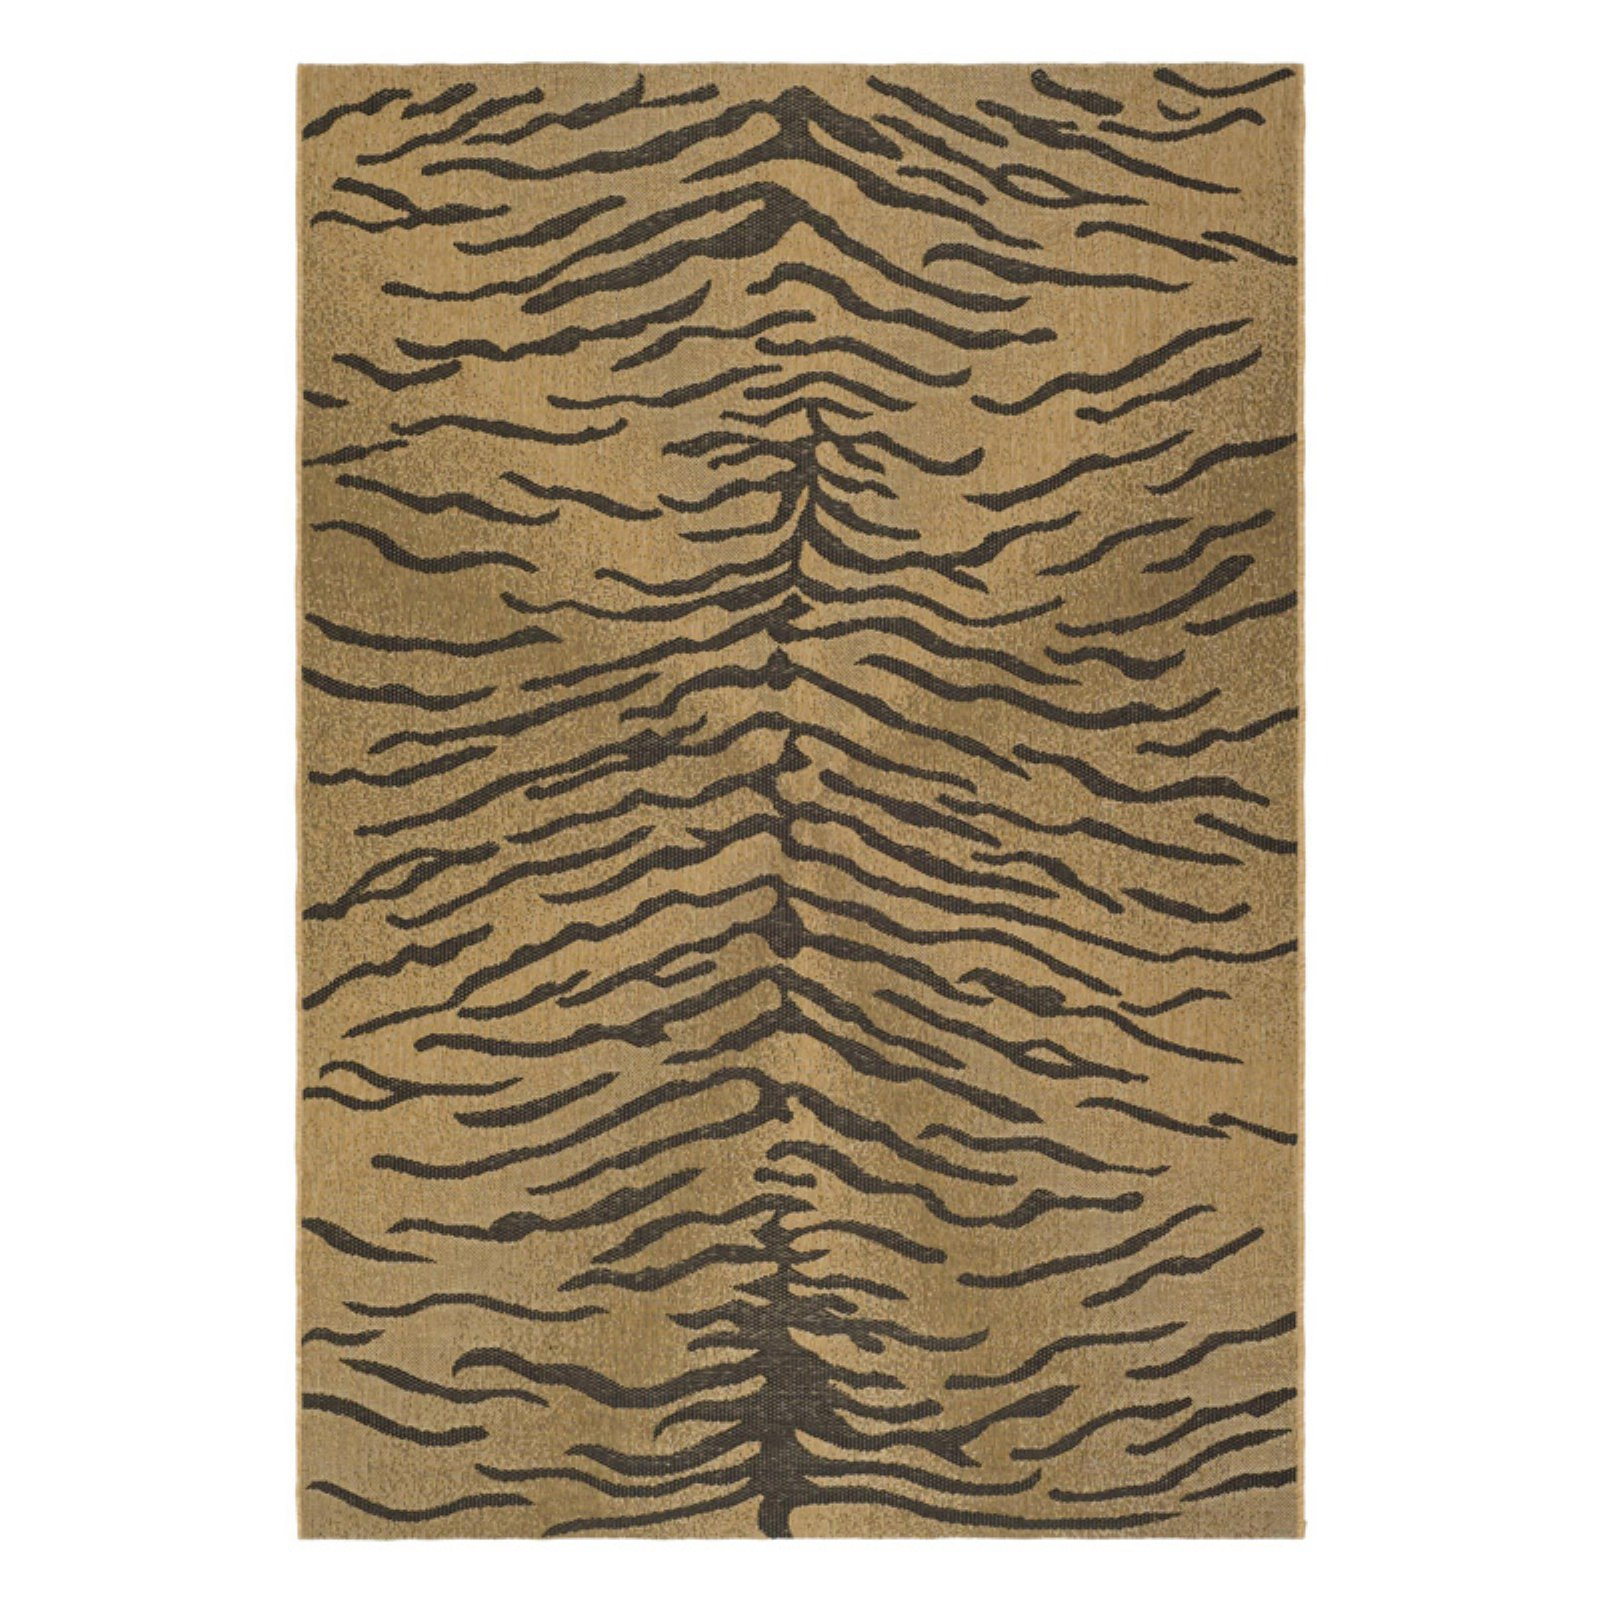 Safavieh Courtyard CY6953 Indoor/Outdoor Area Rug Gold/Natural